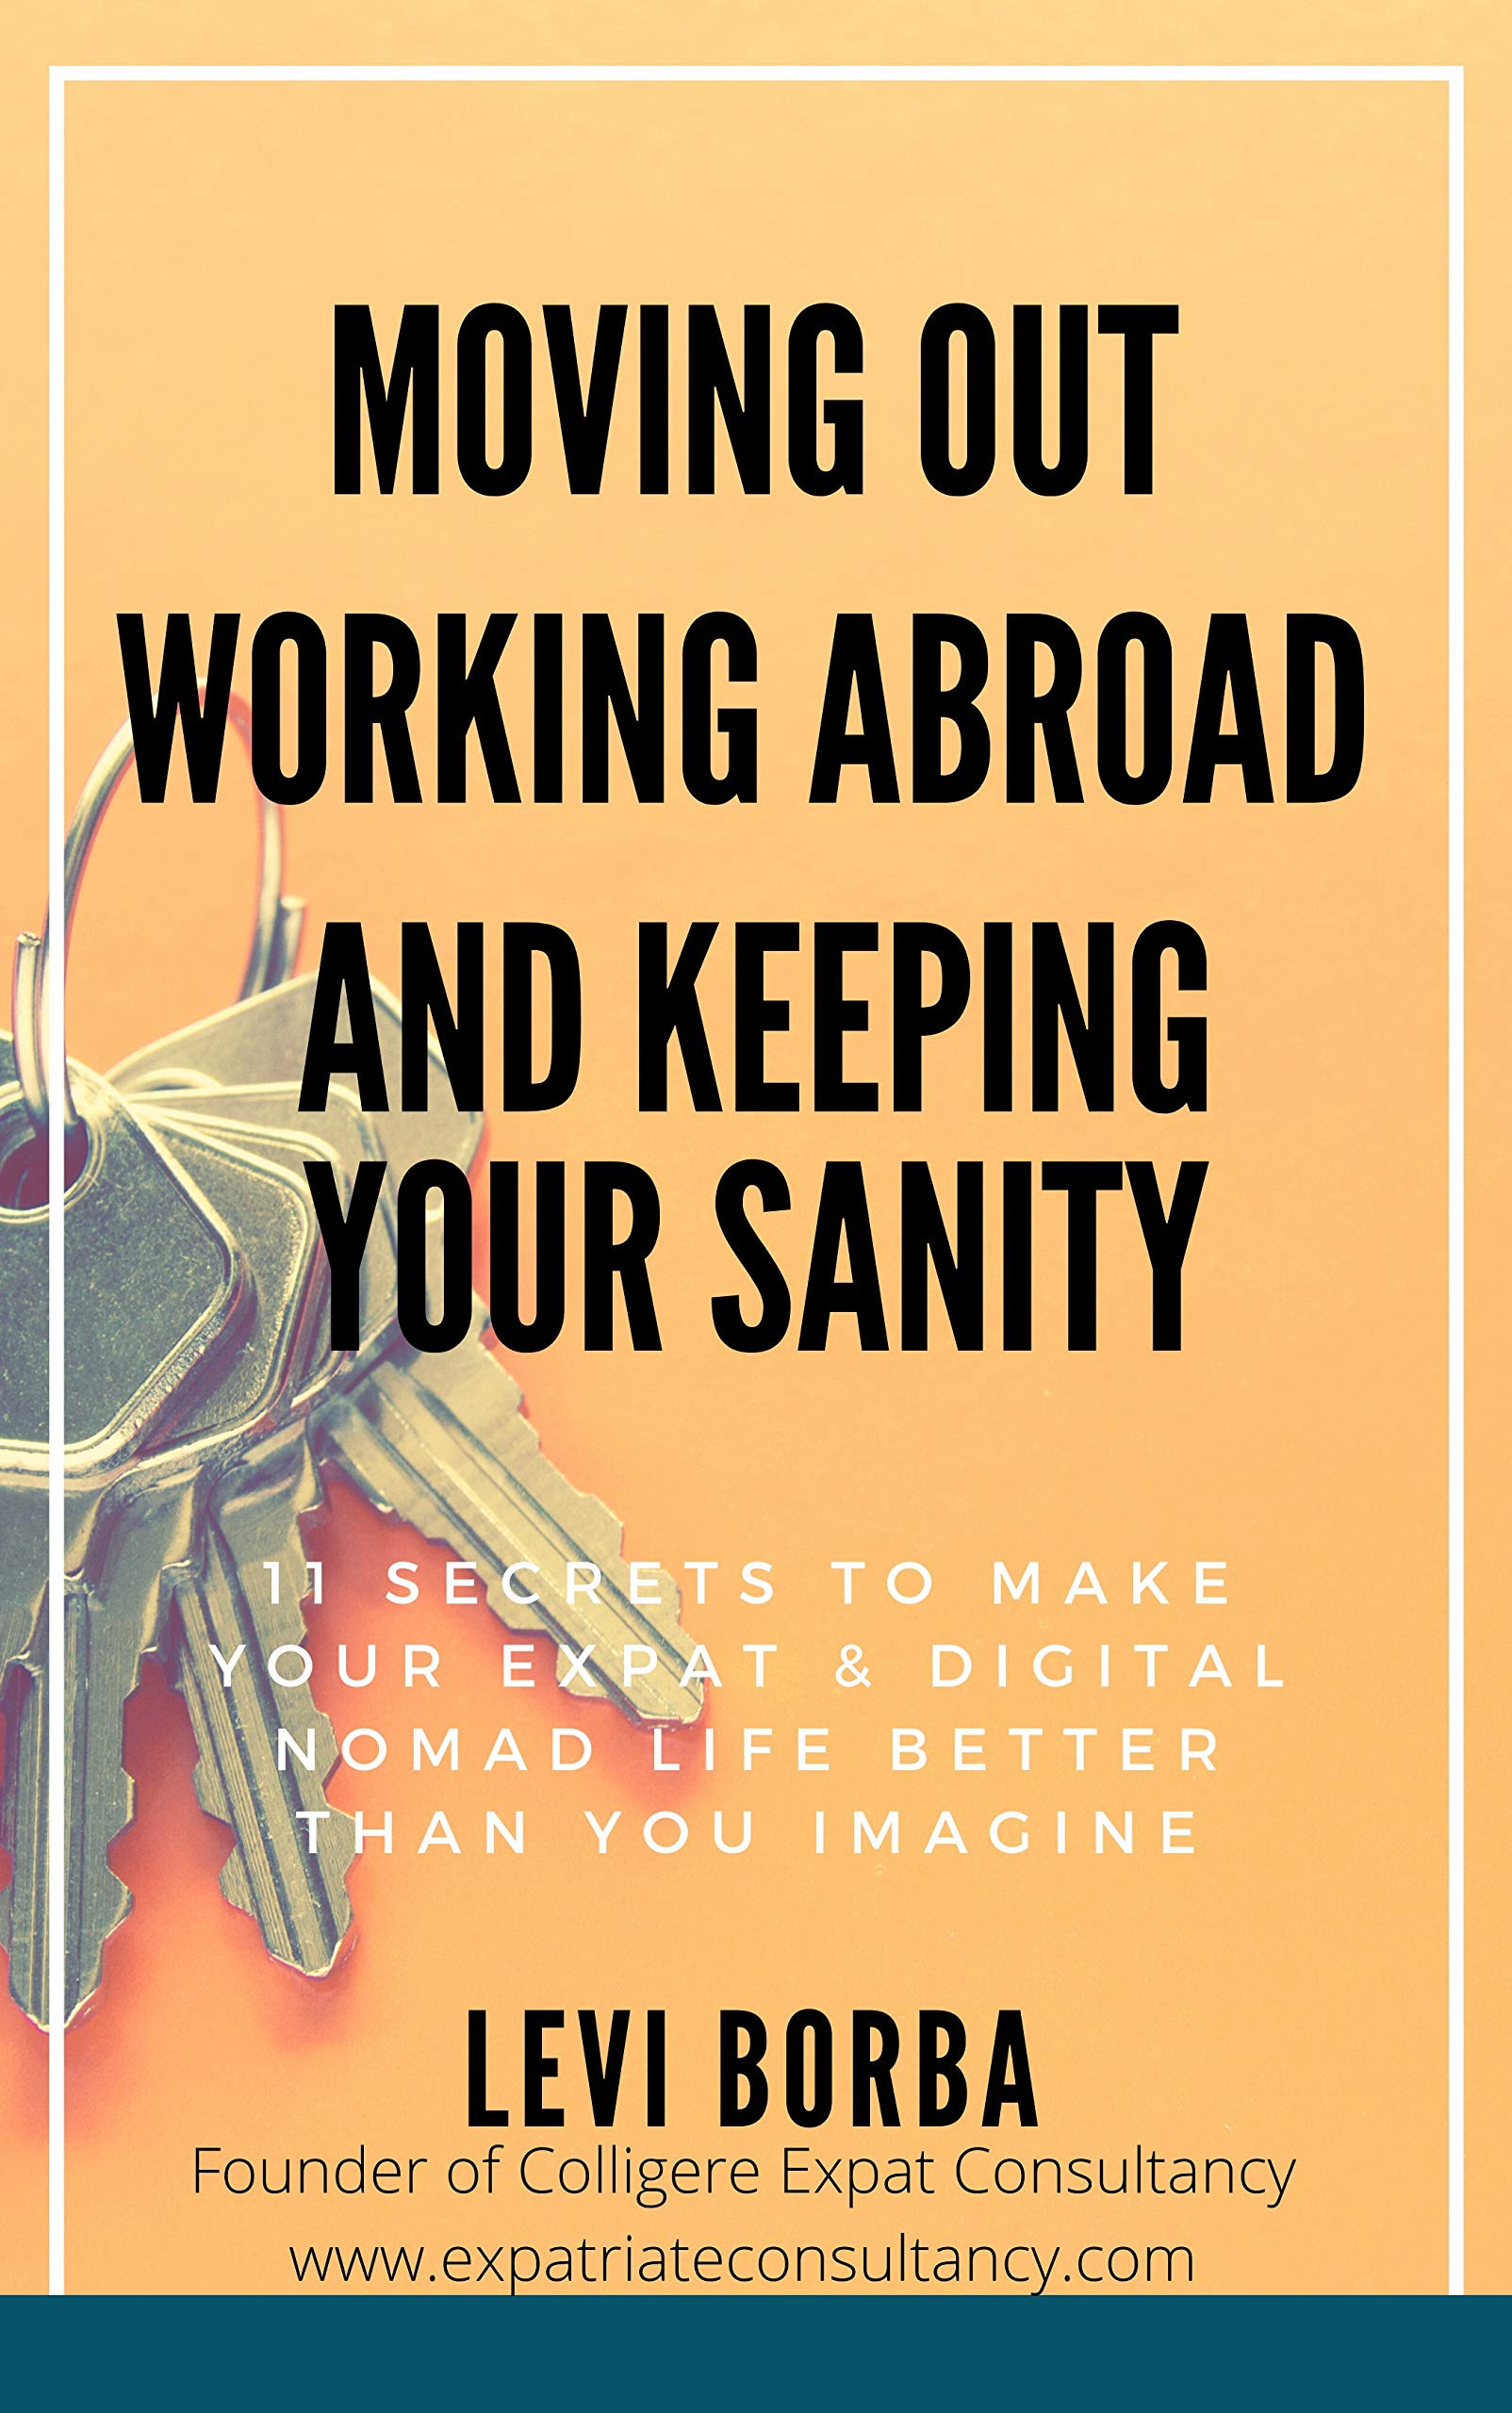 Image OfMoving Out, Working Abroad And Keeping Your Sanity: 11 Secrets To Make Your Expat & Digital Nomad Life Better Than You Ima...